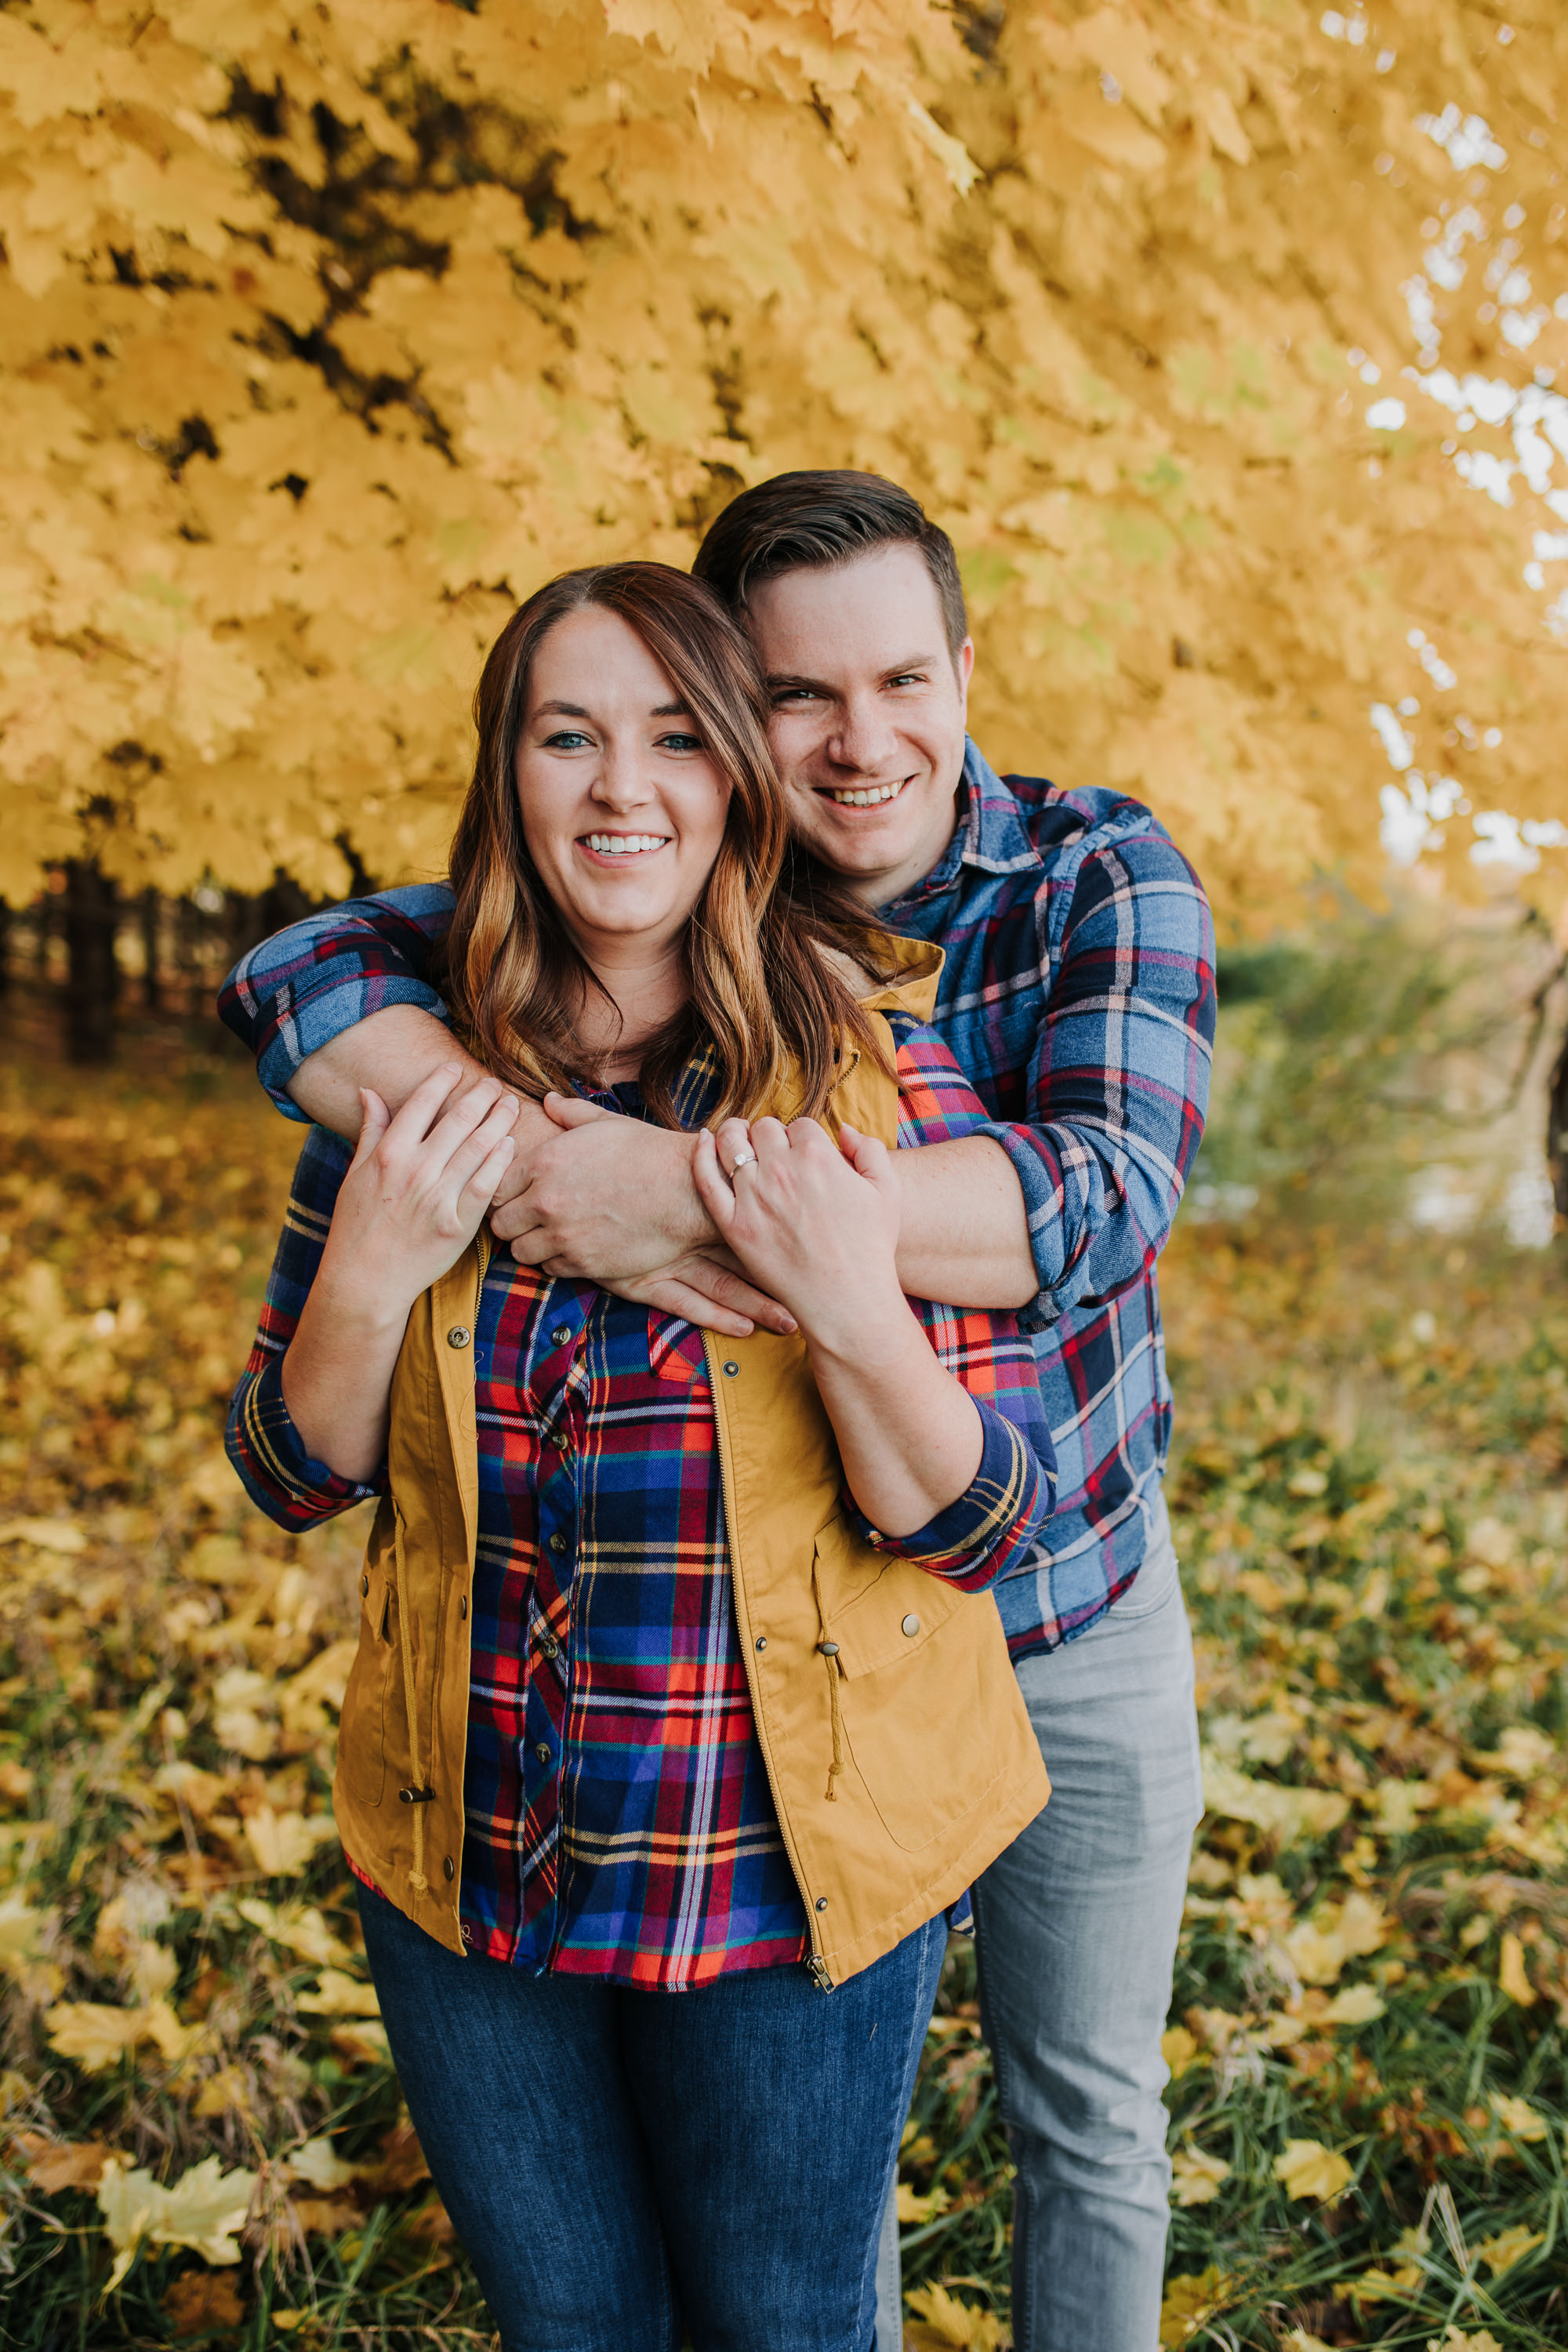 Katie & Adam - Engaged - Nathaniel Jensen Photography - Omaha Nebraska Wedding Photograper - Omaha Nebraska Engagement Session - Chalco Hills Engagement Session-4.jpg